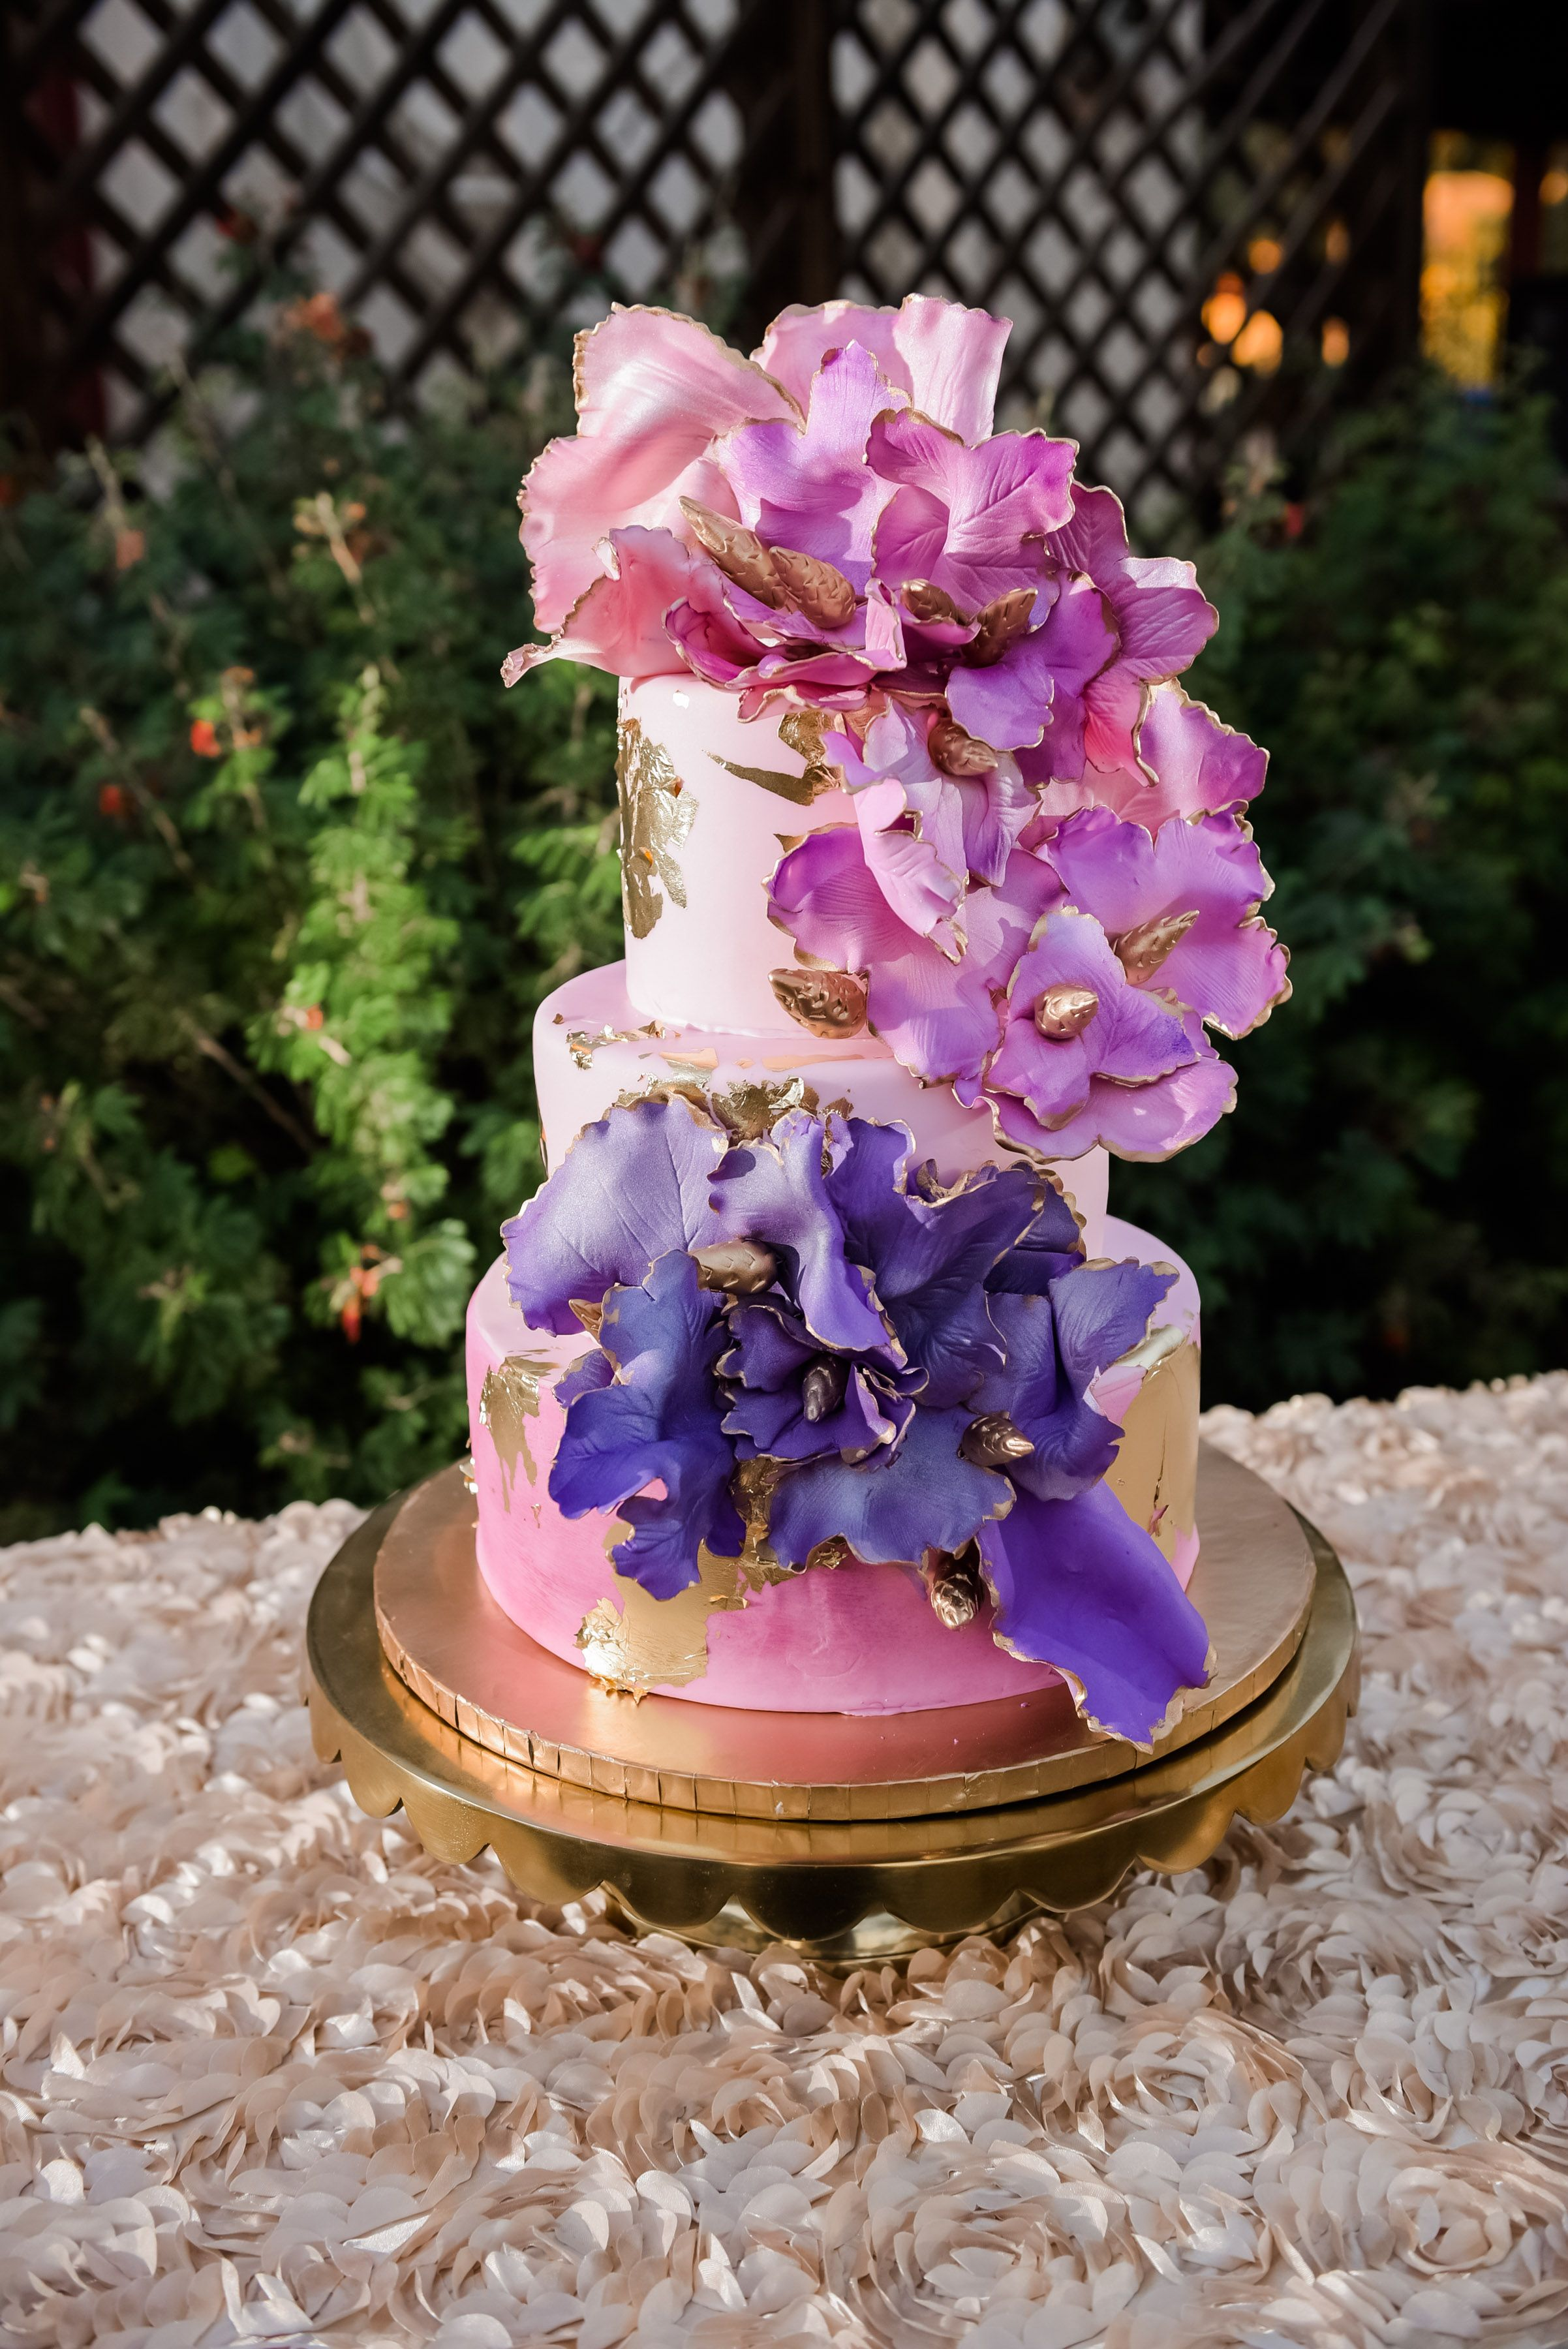 This cake was designed by the fabulous Pauline Jacqueline Bakery located in Scottsdale Arizona